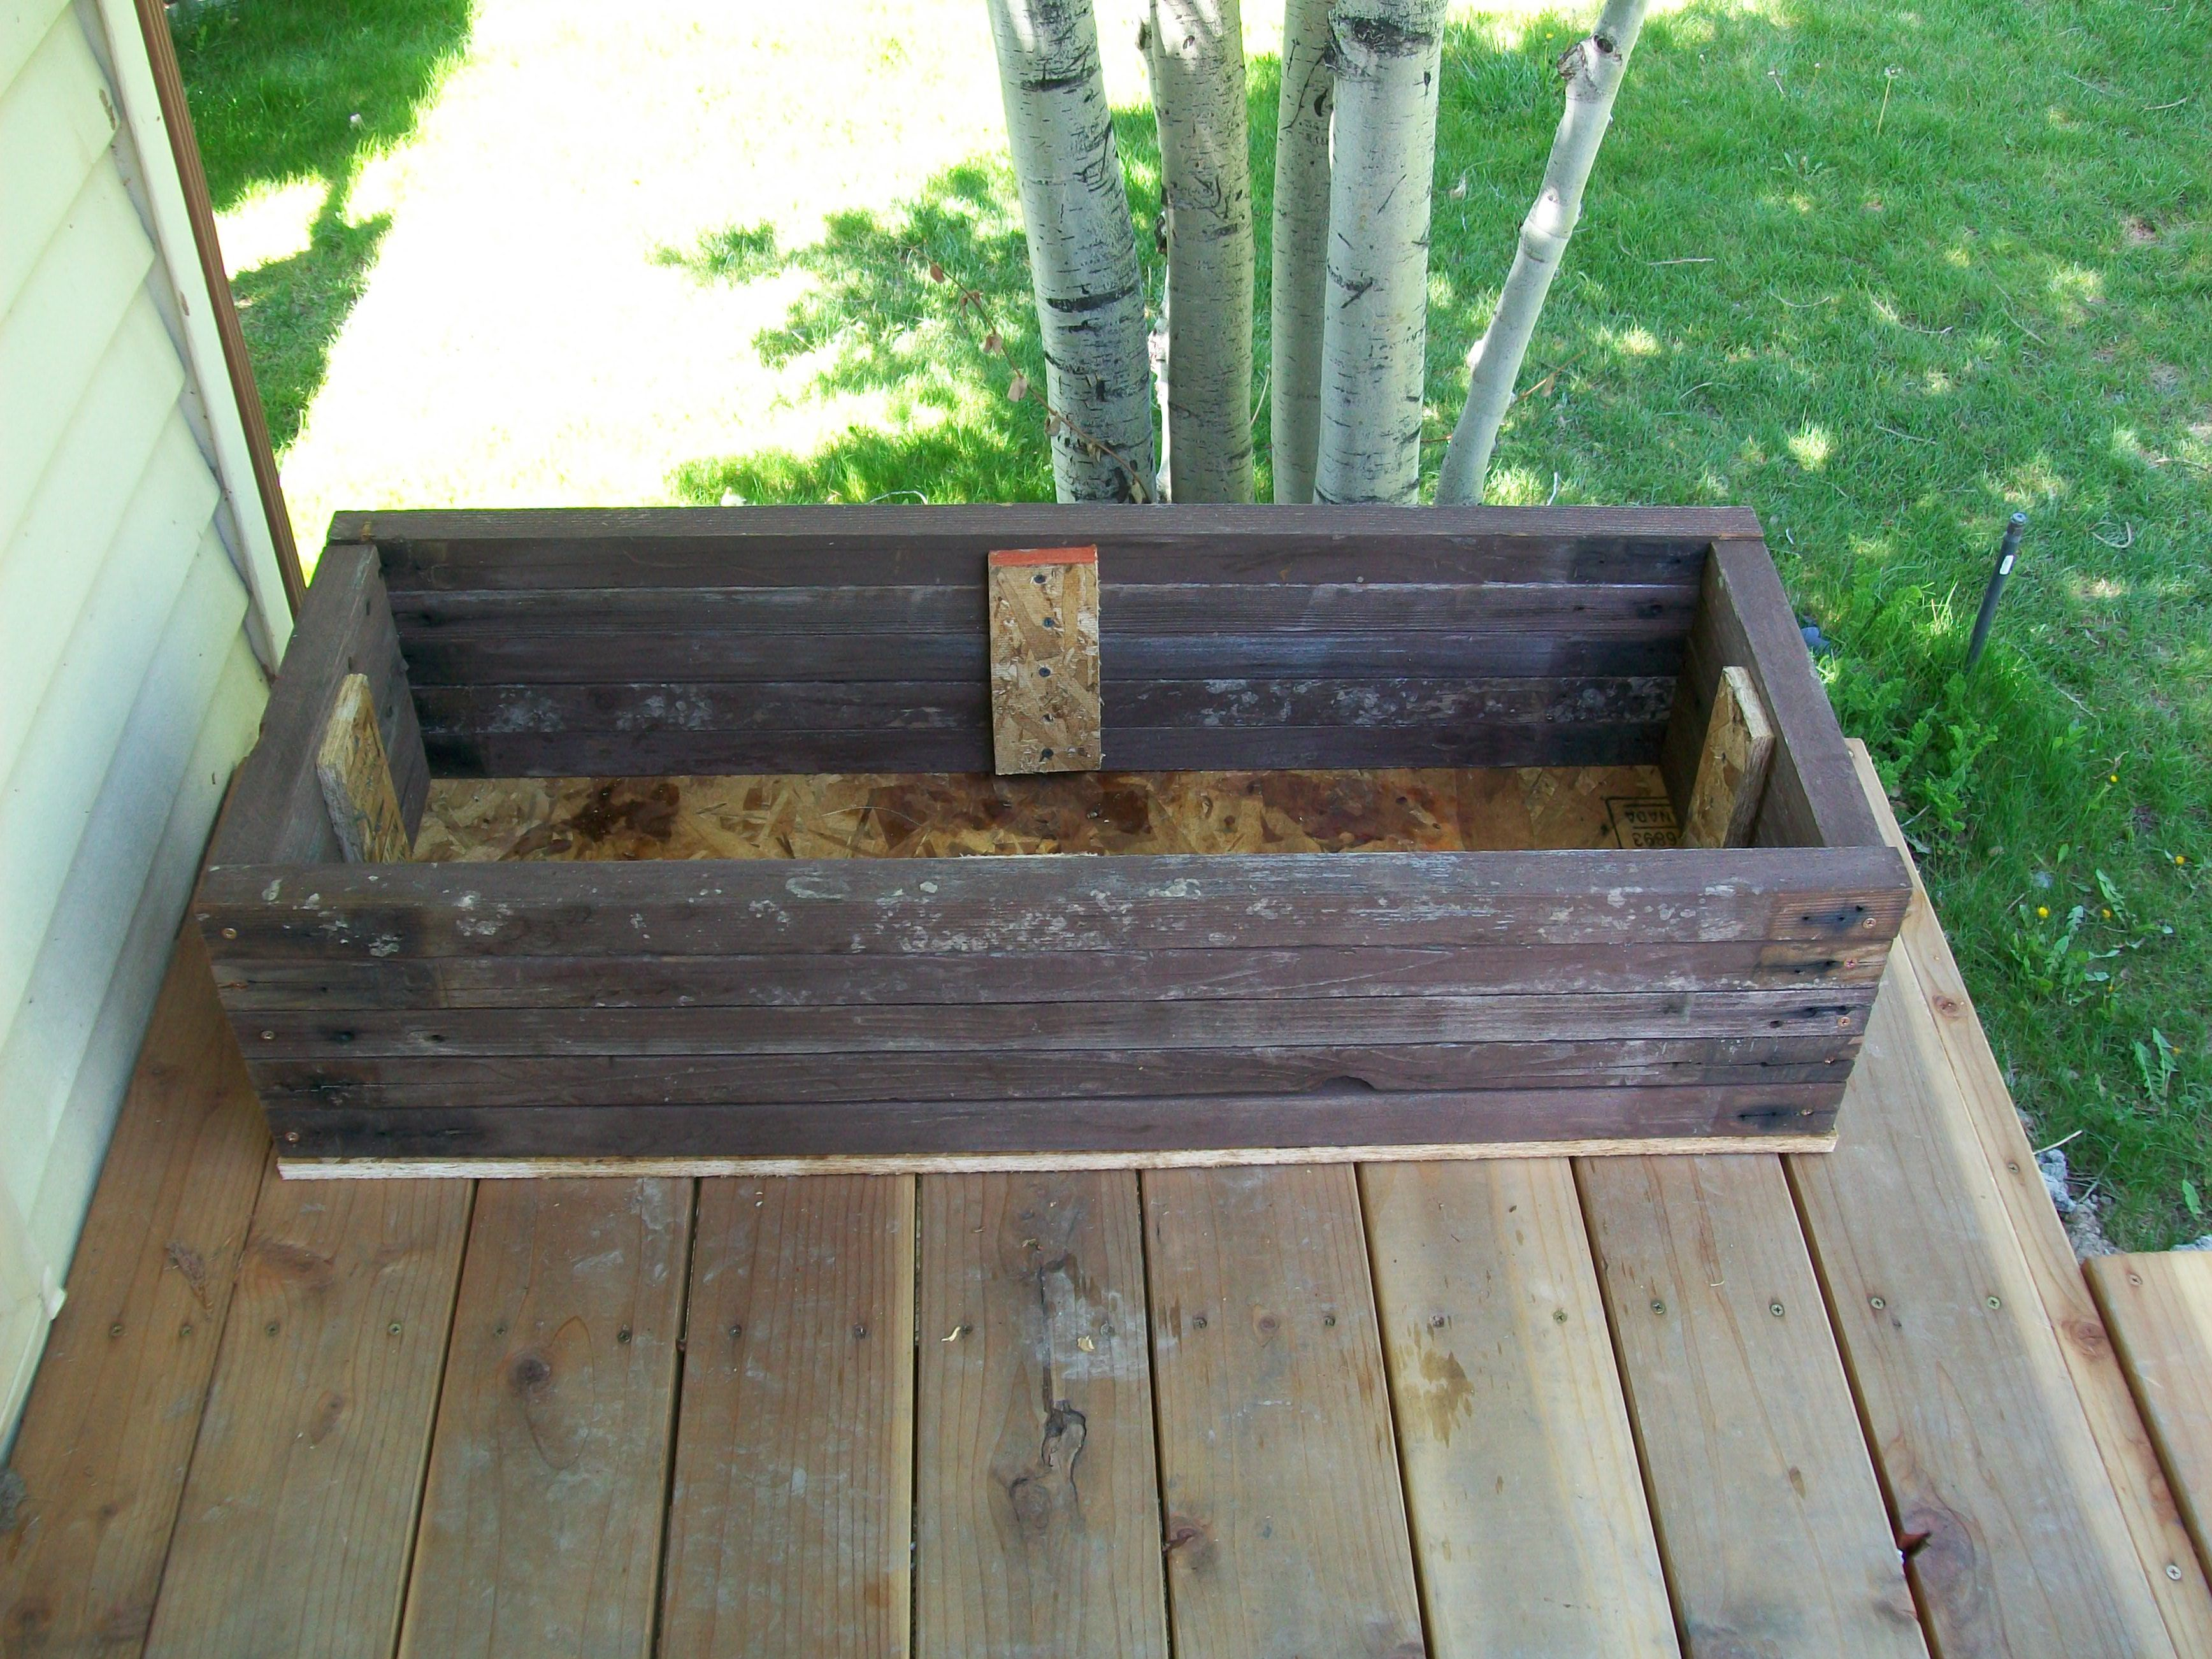 How To Build Flower Boxes From Old Deck Or Fence Wood Ehow Uk